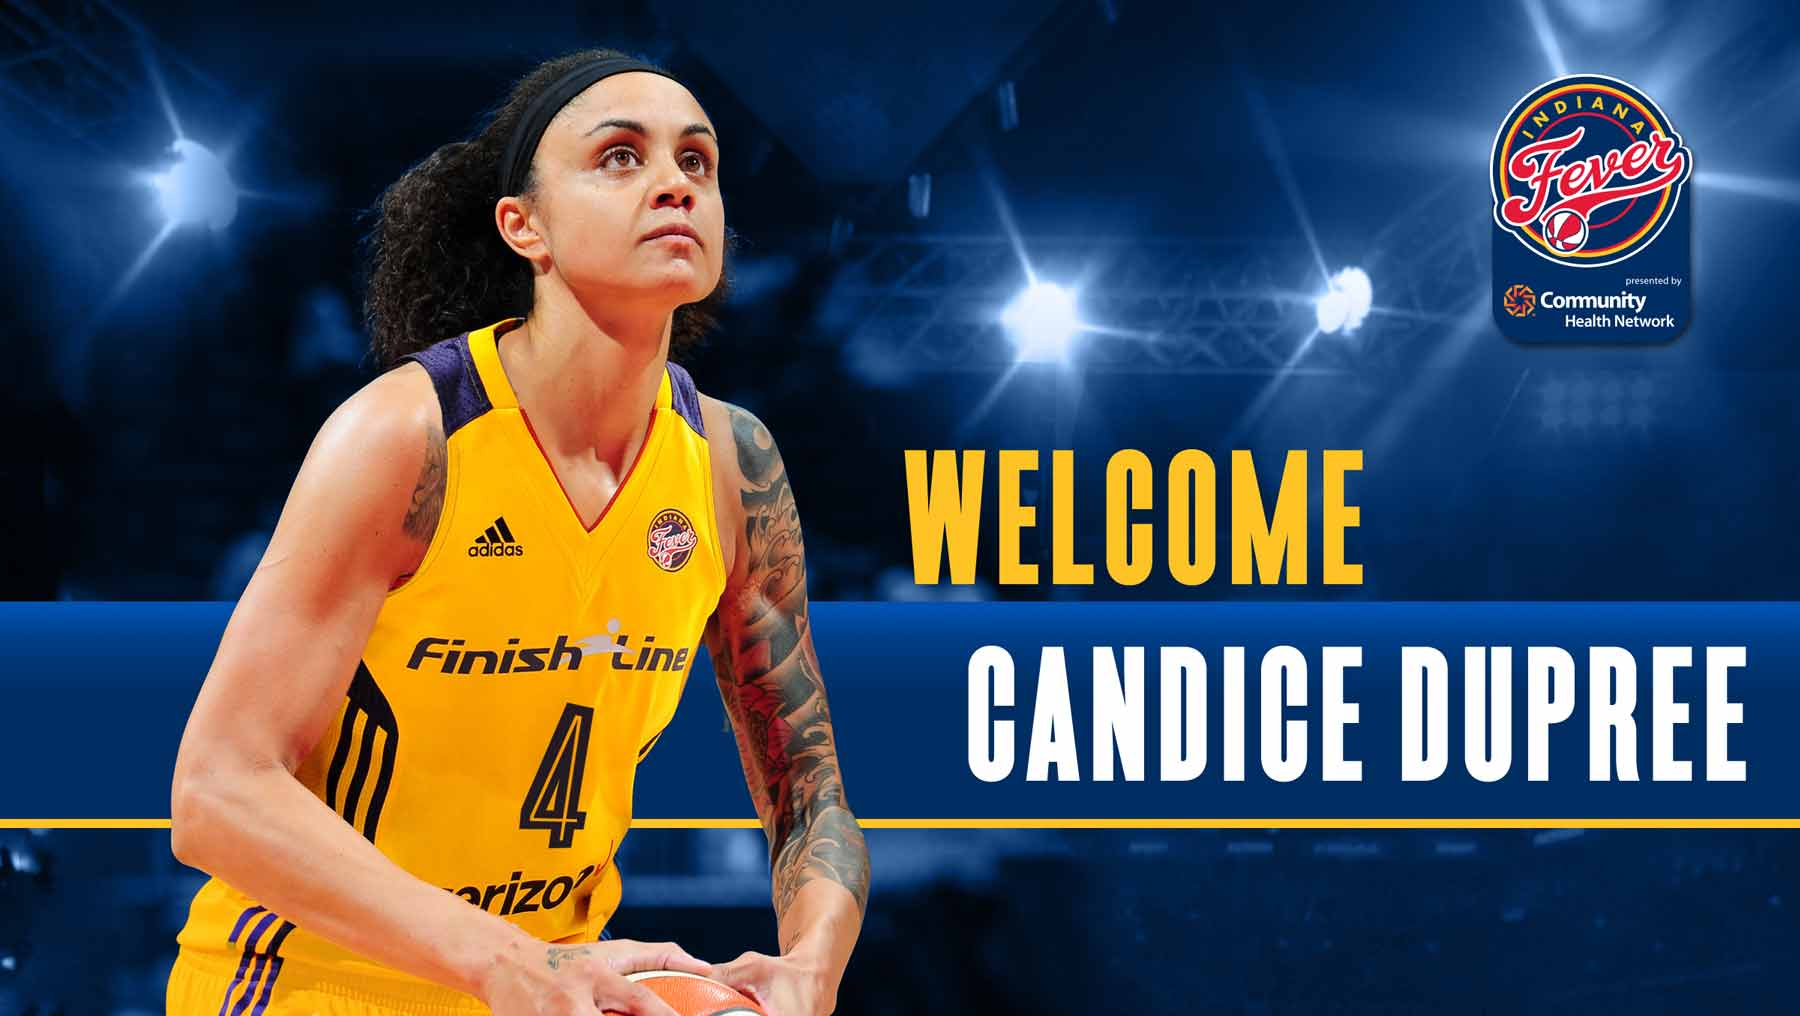 Welcome! Candice Dupree